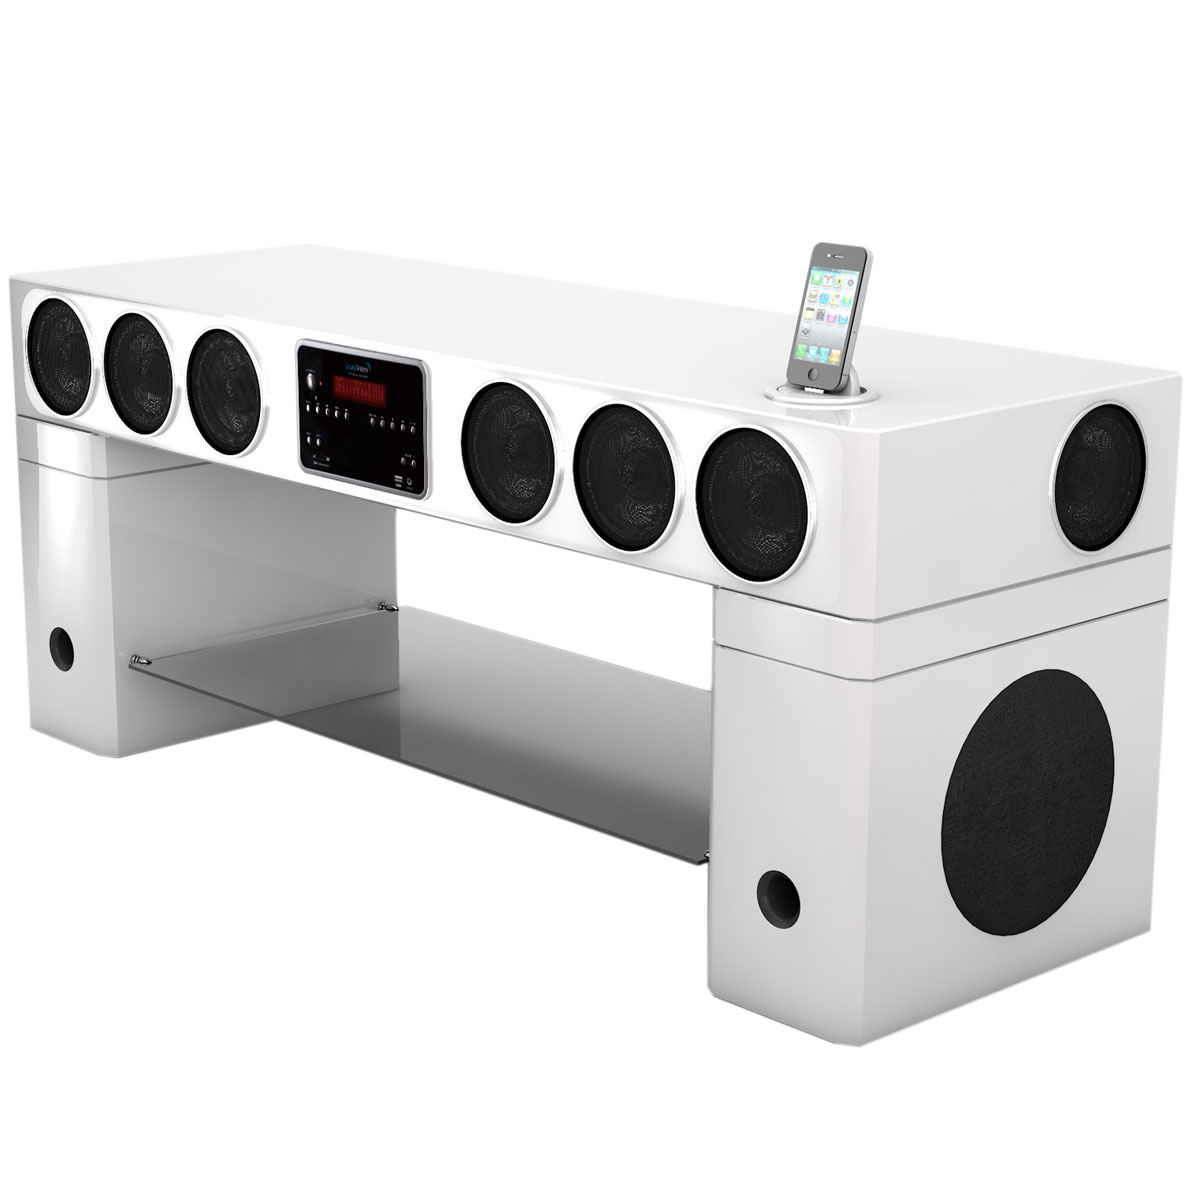 Soundvision Sv 440 Bt Blanc Ensemble Home Cinema Soundvision Sur